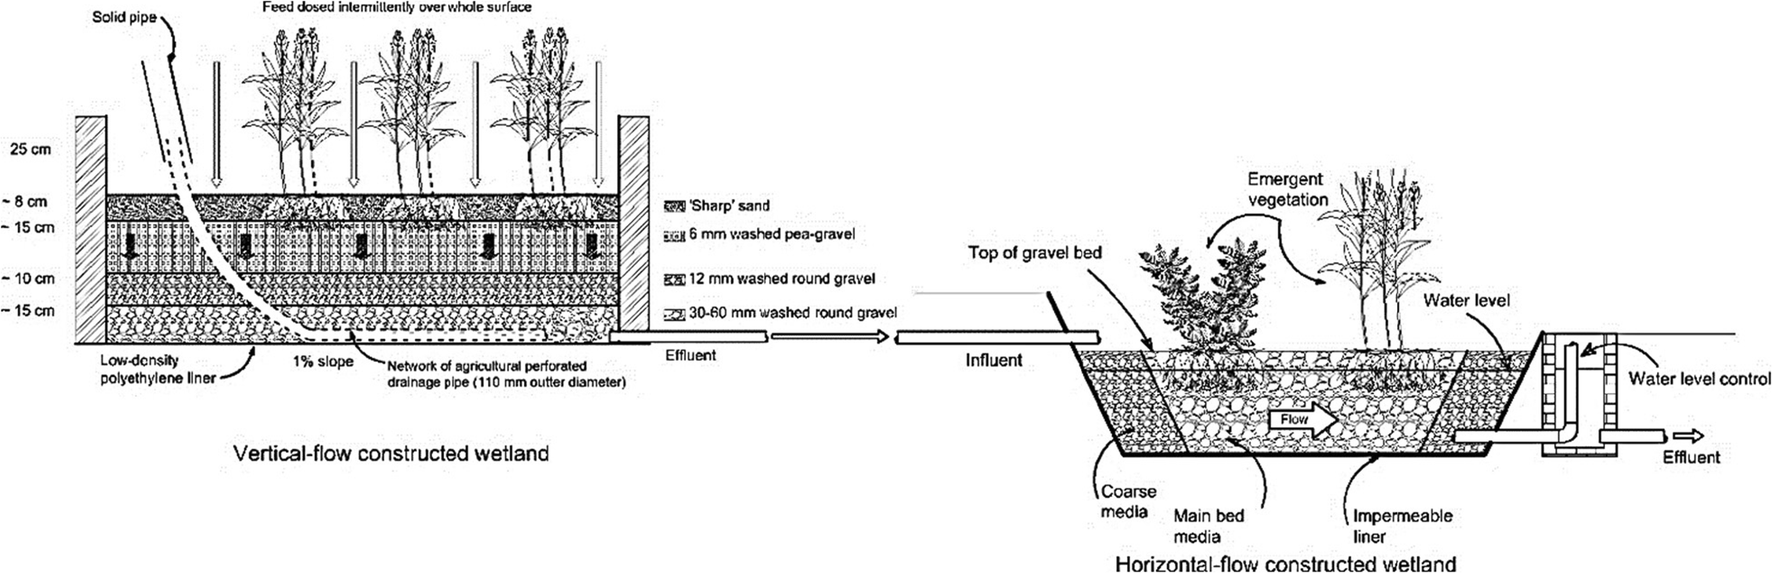 Wetlands for wastewater treatment and subsequent recycling